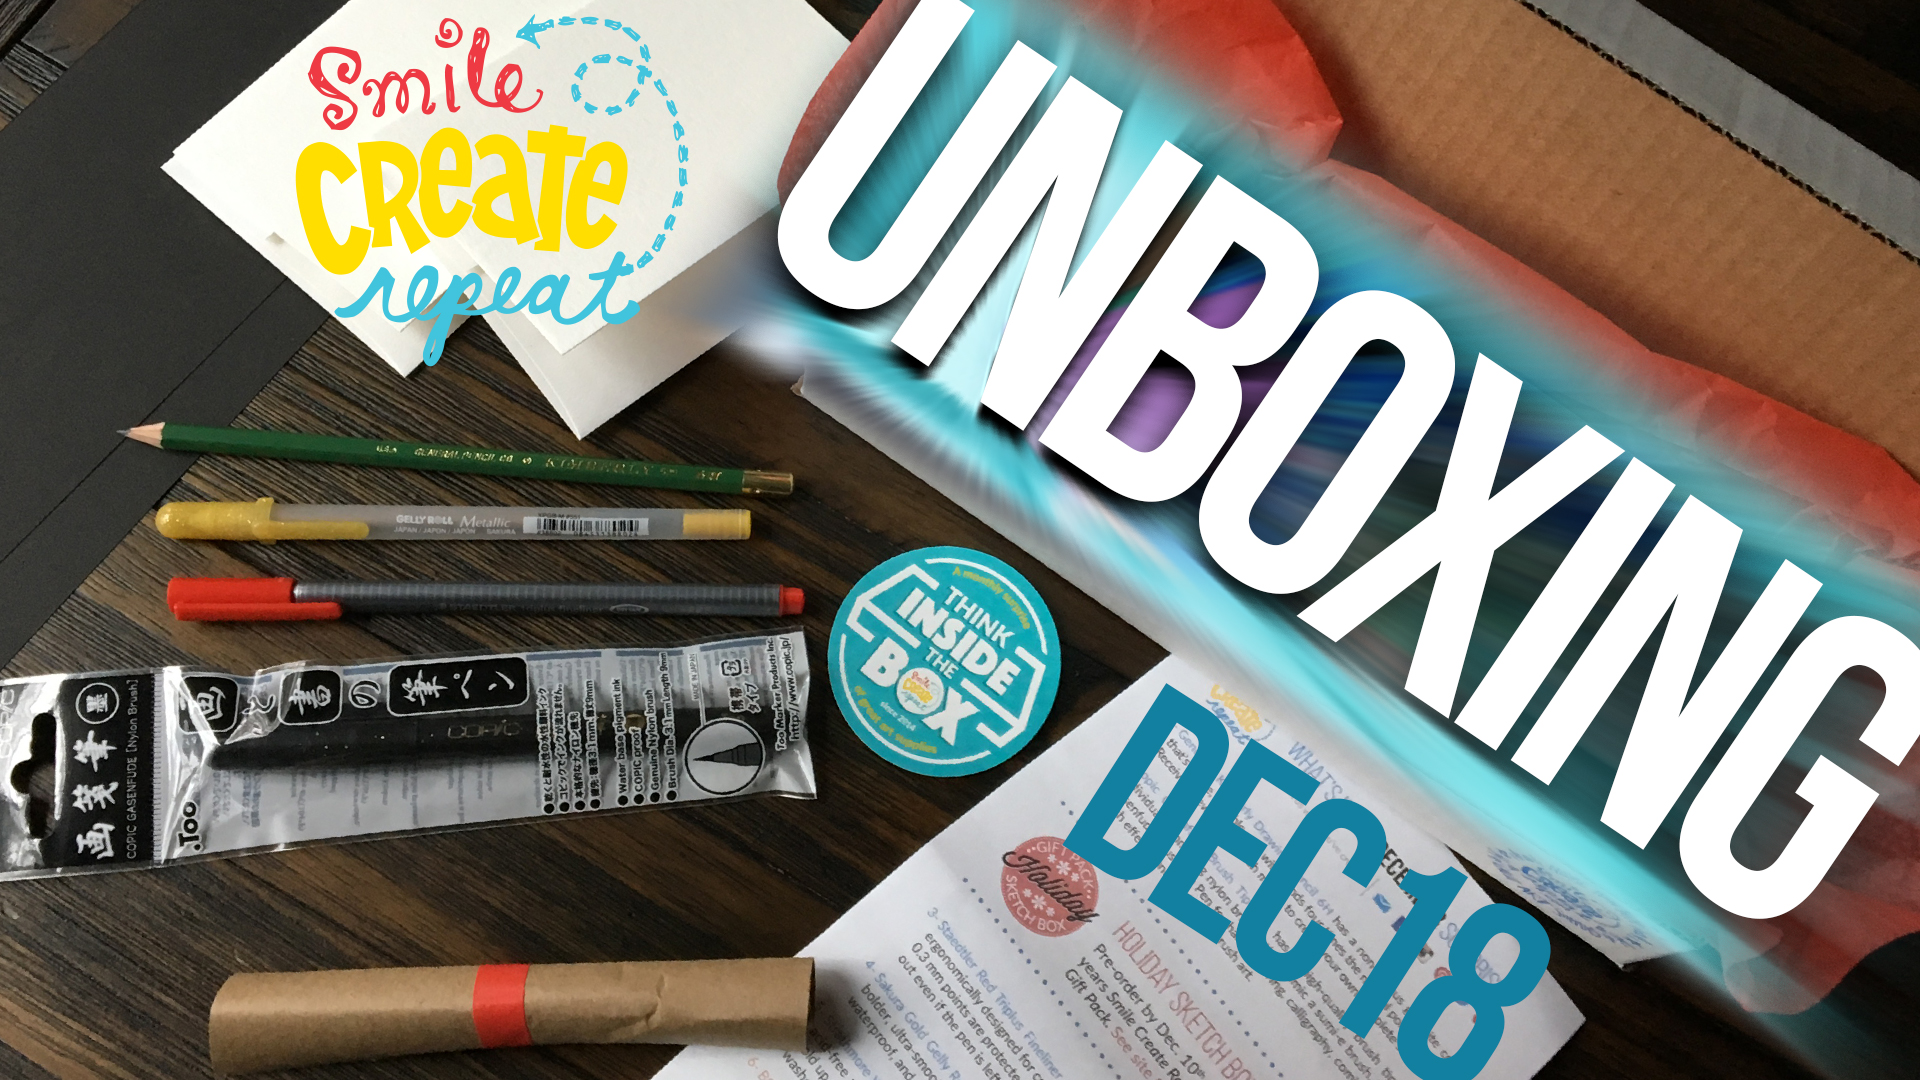 The winner of this Dec 2018 art supply box could be you! In this box, you will get products from Kimberly, Copic, Straedtler, Sakura, Strathmore, and fun extras! Our Creative Card and  art demo  will help you to explore your supplies and inspire creativity!